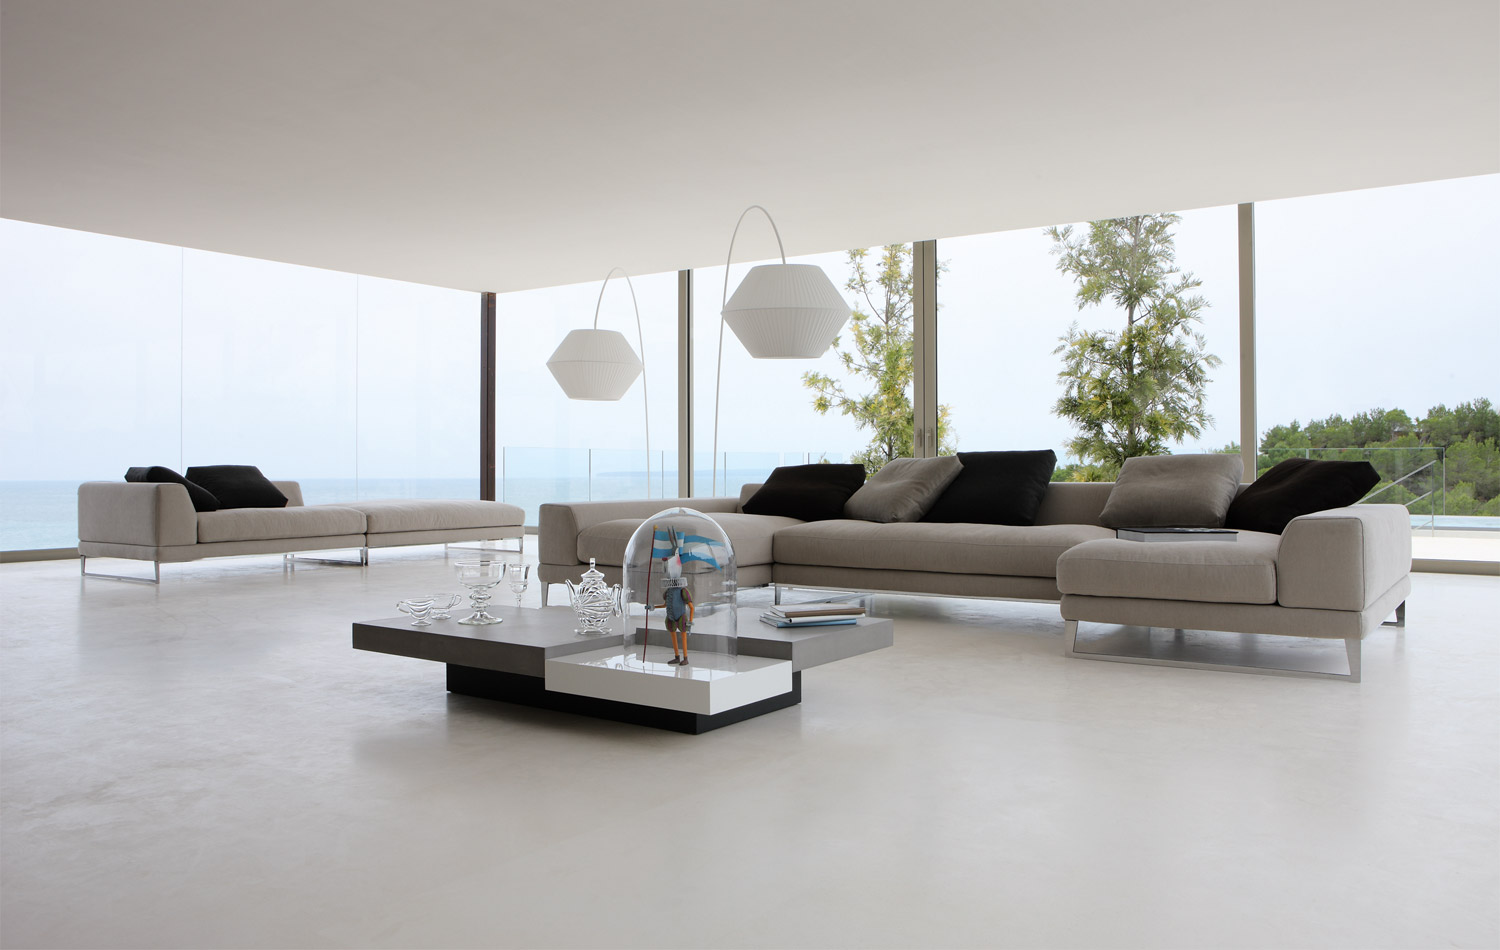 Design Wohnzimmer Living Room Inspiration 120 Modern Sofas By Roche Bobois